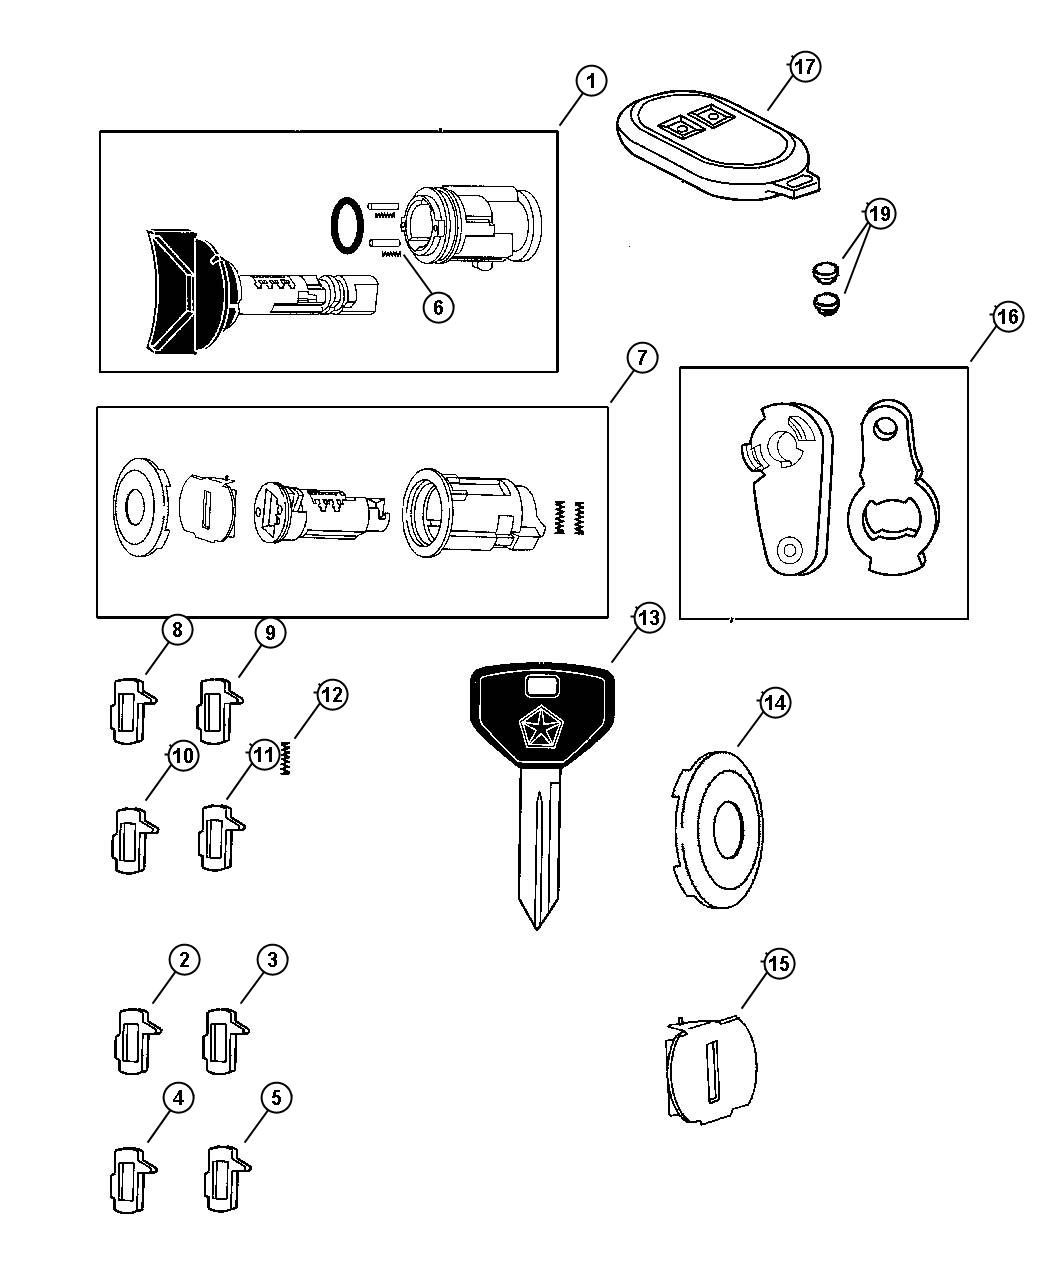 Chrysler 300 Receiver Keyless Entry Gxr After 7 13 01 Lock Rear Components